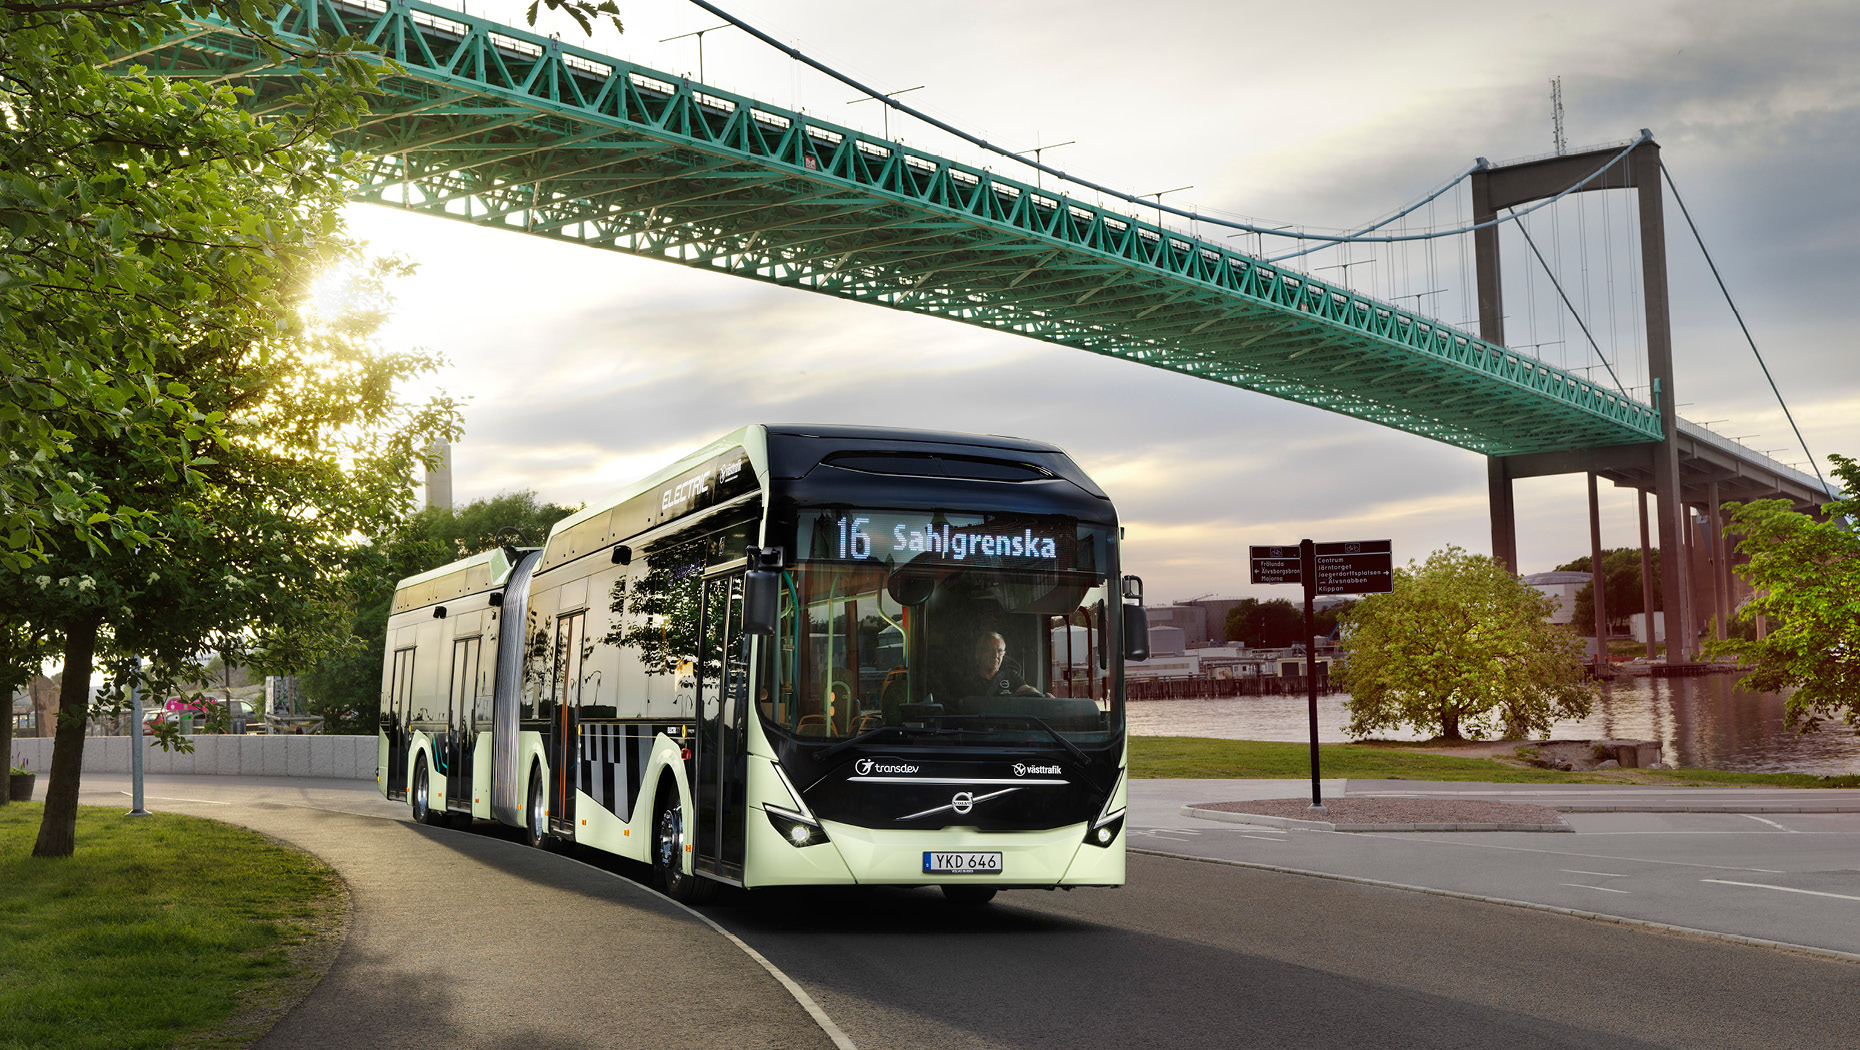 Volvo supplied image of a new articulated bus